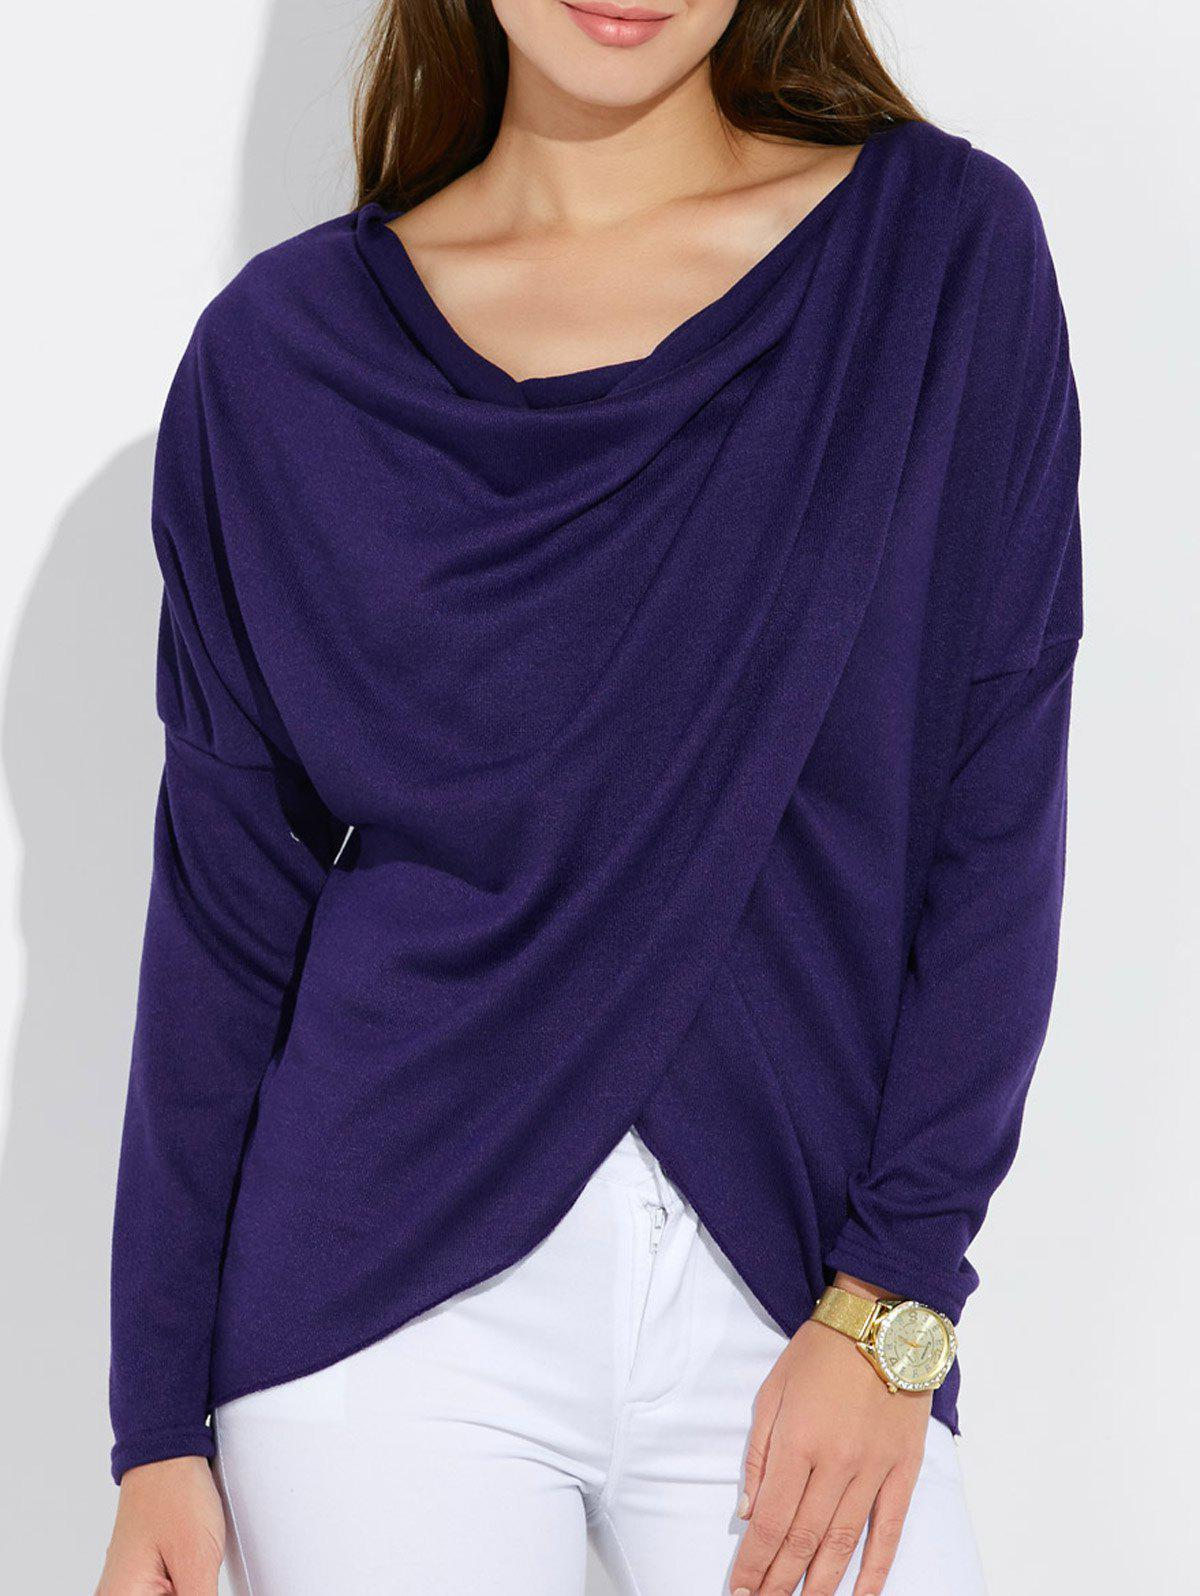 Dolman Sleeve Ruched Tulip TeeWomen<br><br><br>Size: S<br>Color: PURPLE